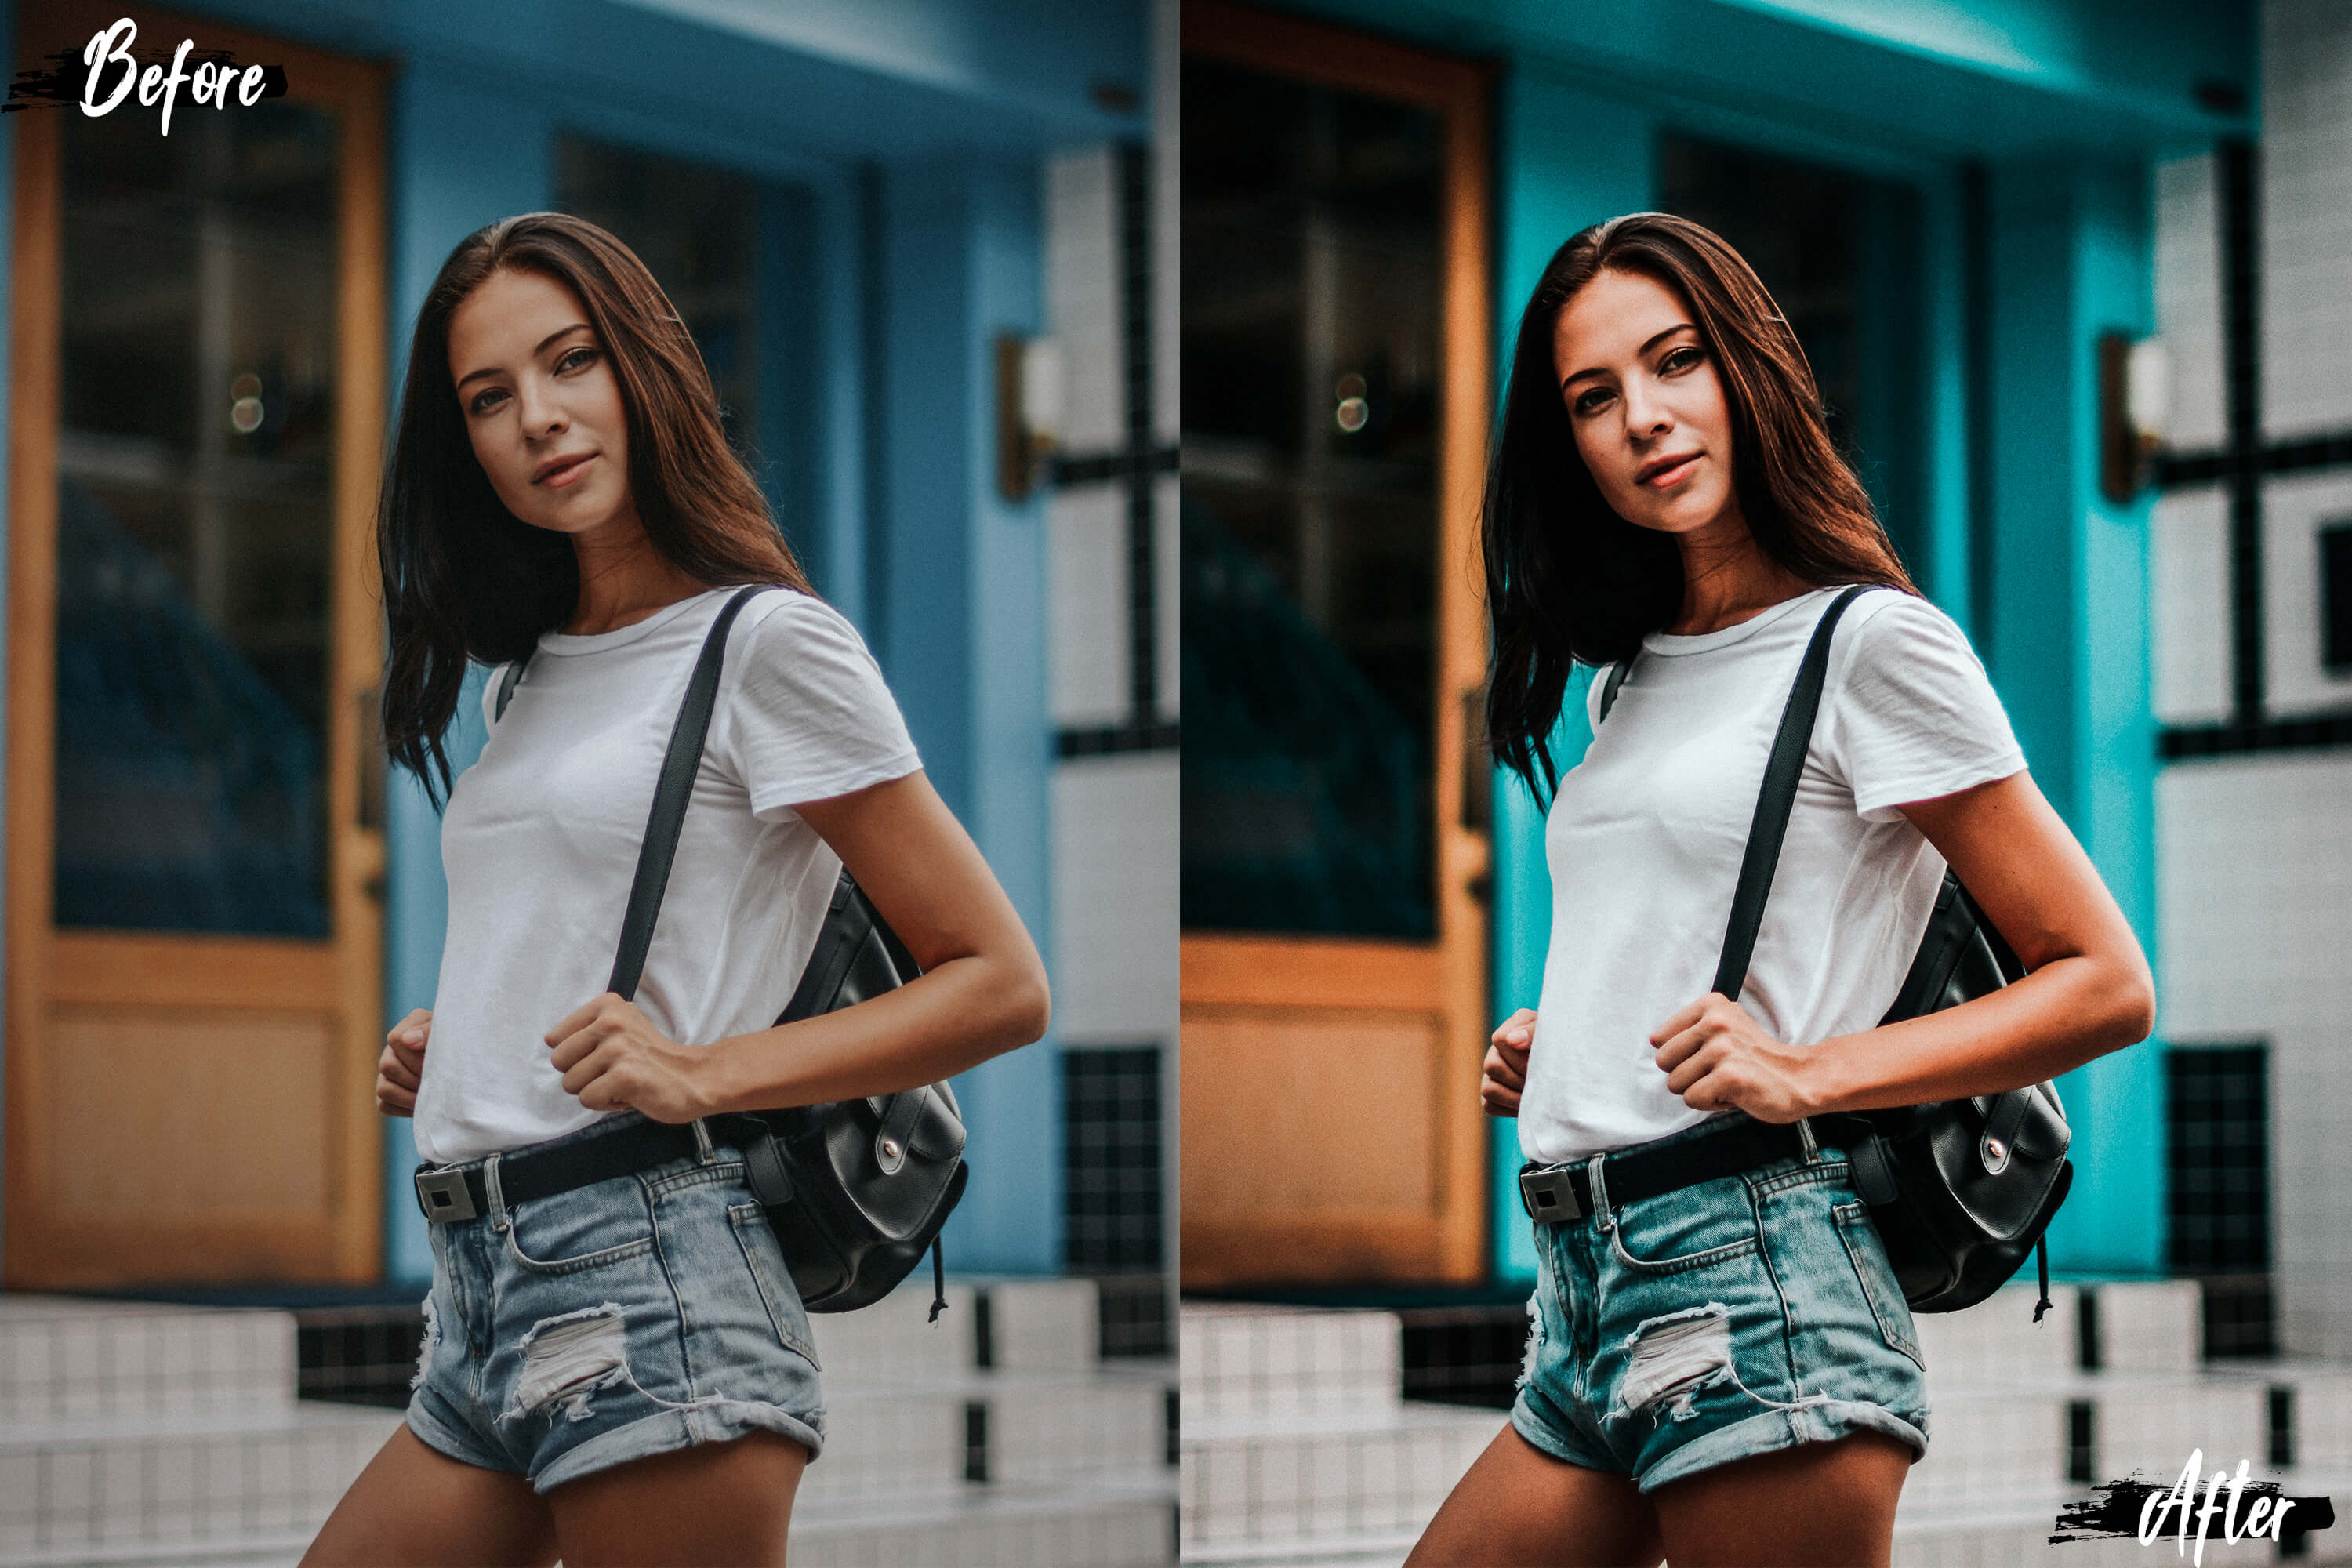 5 White Land Mobile Lightroom Presets, Bright portraiture example image 10